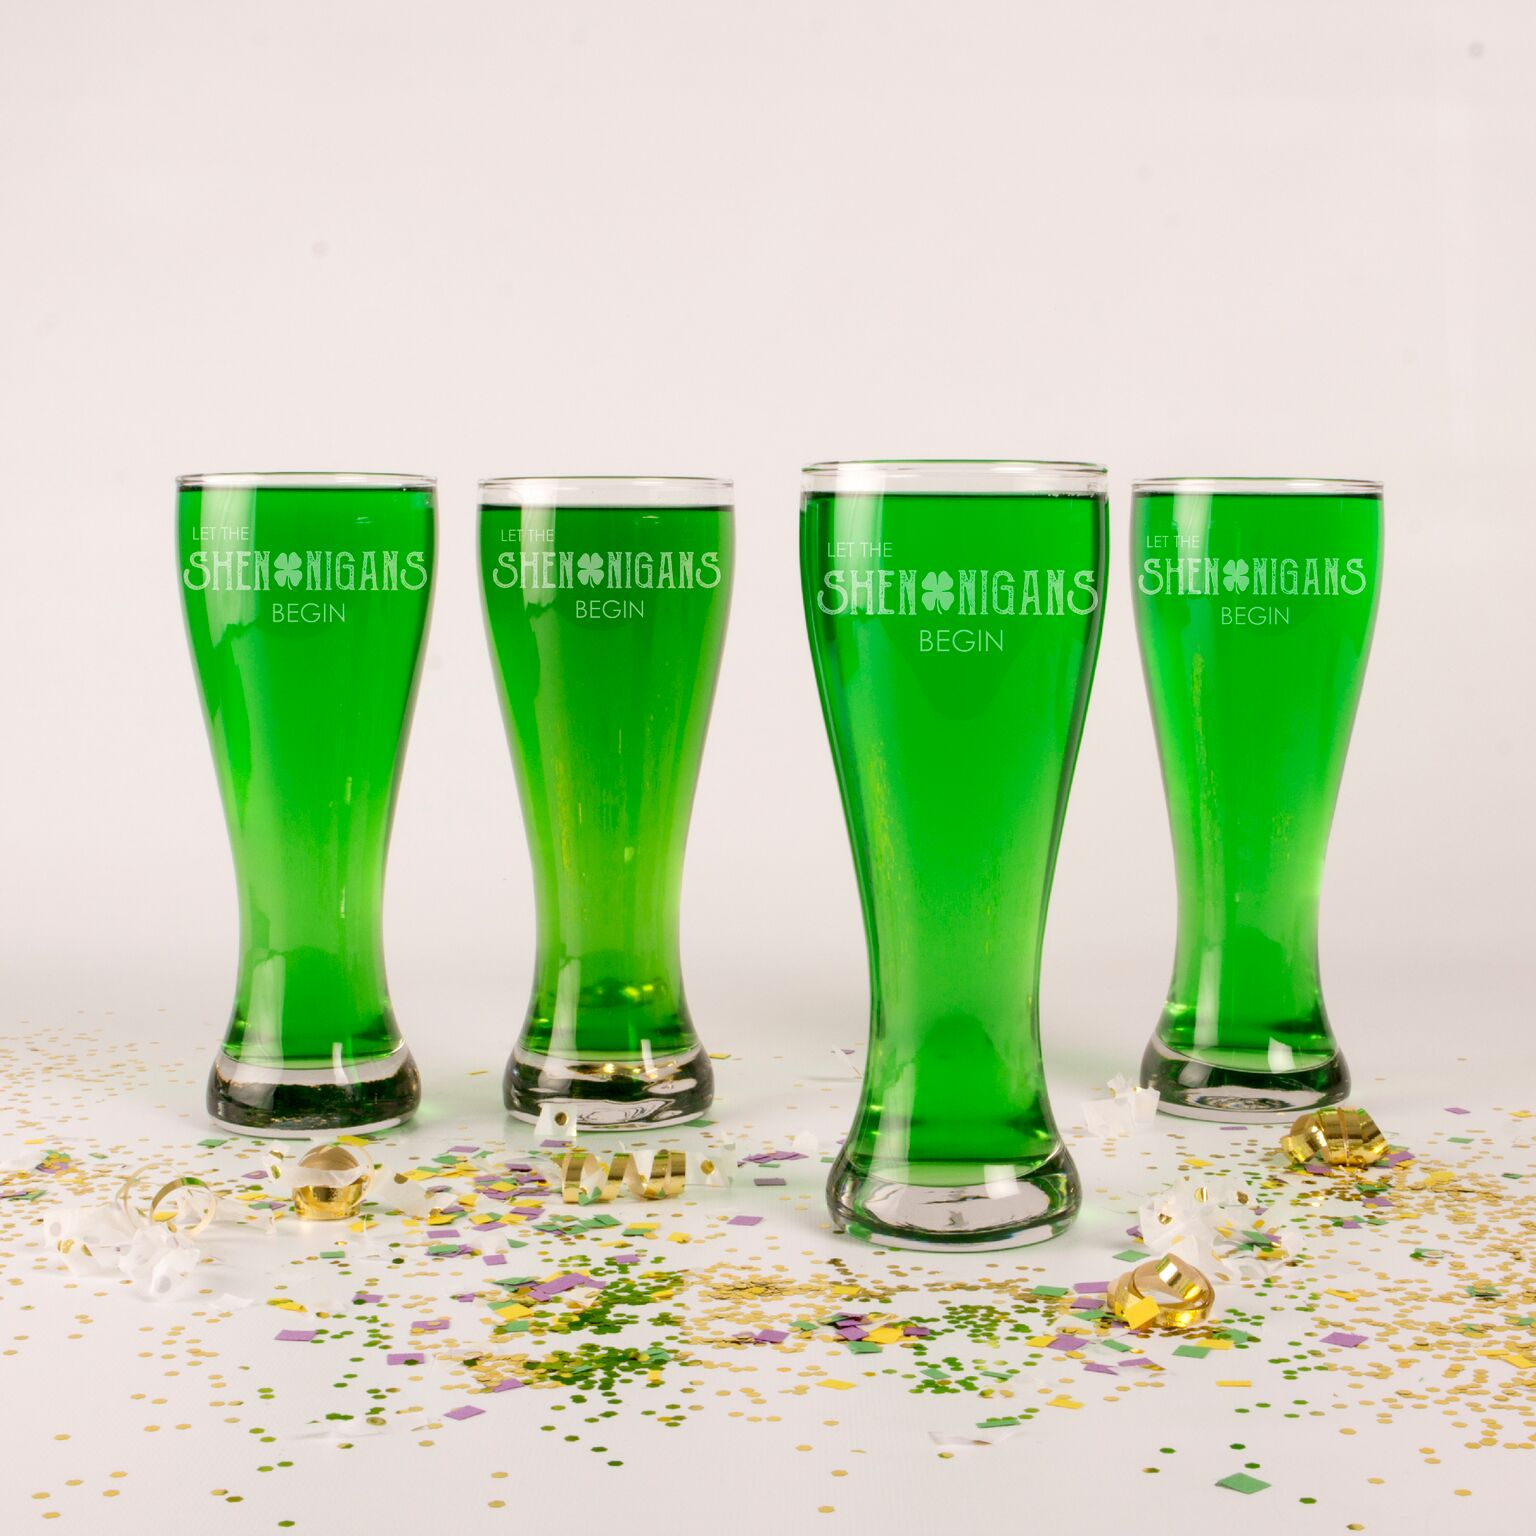 Cathys Concepts PAT17-1122 20 oz St. Patricks Day Shenanigans Pilsner Glass - Set of 4